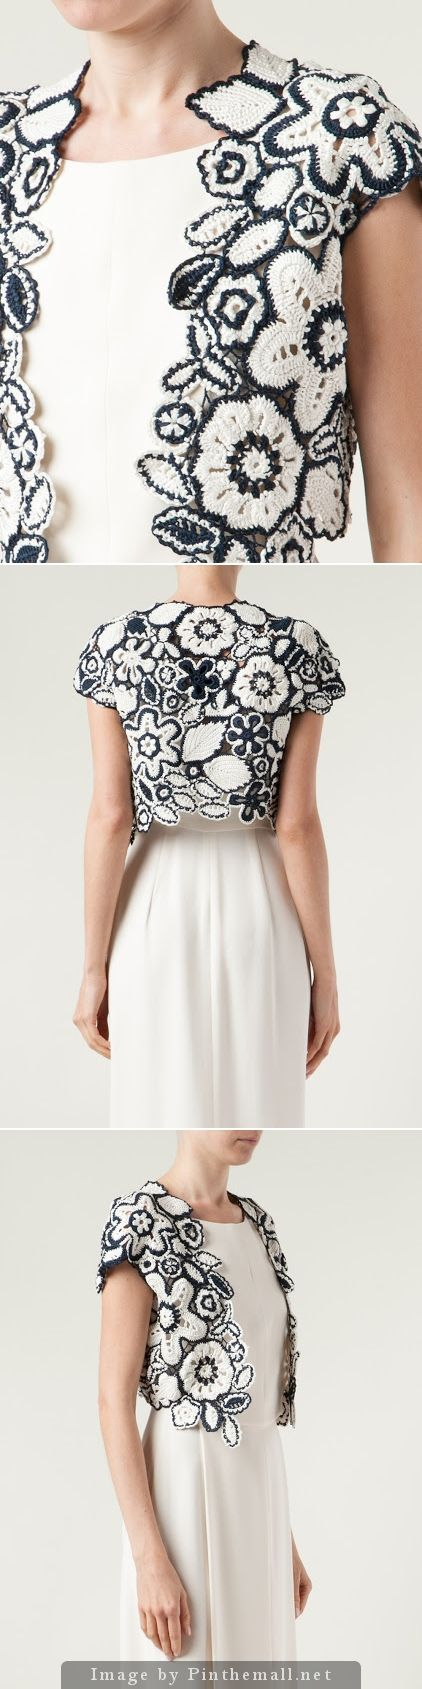 crochet - bolero - irish lace in black and white - oscar de la renta - bit gorgeous